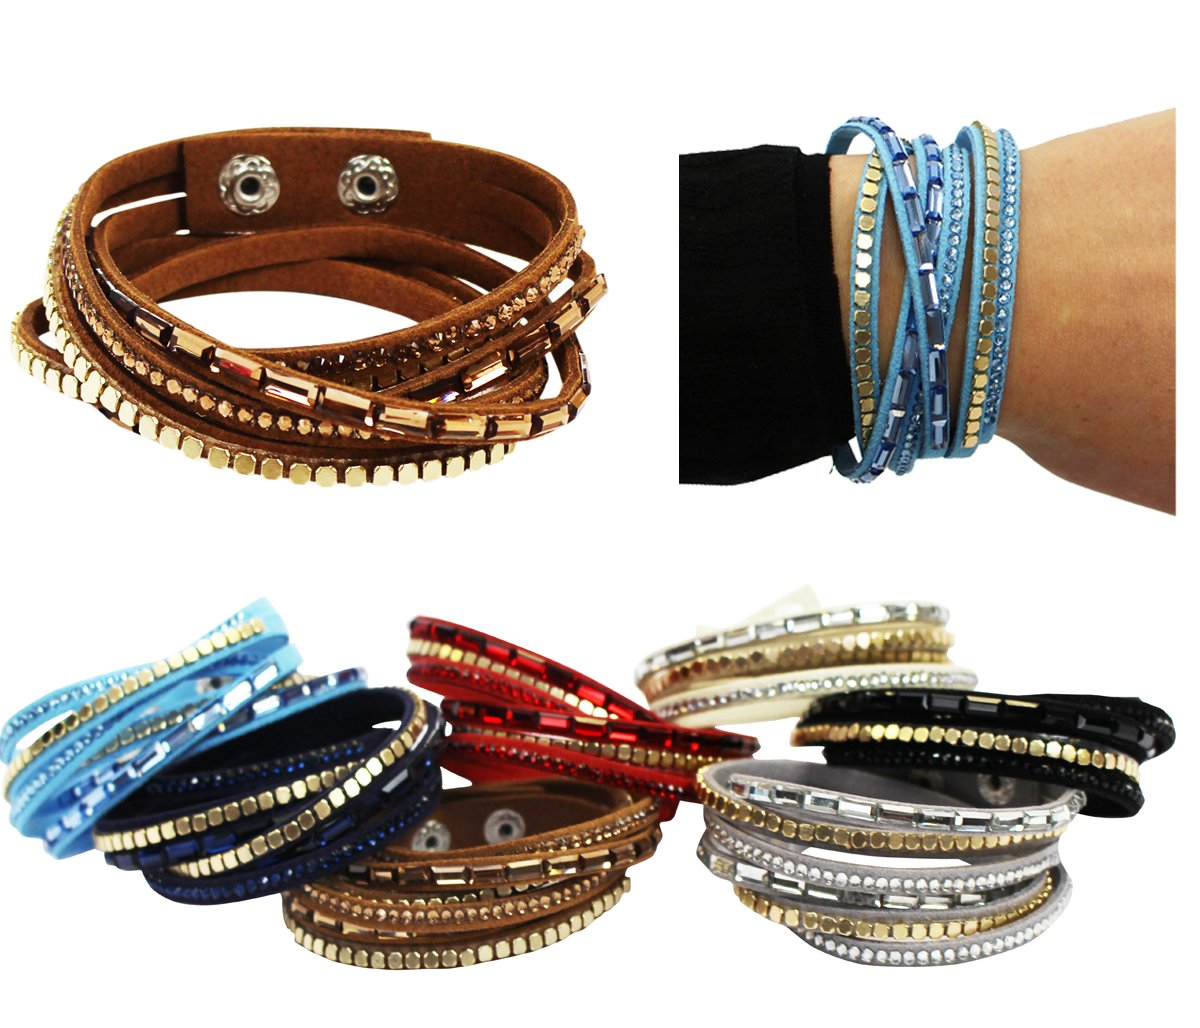 CoverYourHair Bracelets for Women - 4 Pack Cuff Bracelet - Multi Strand Bracelet - Leather Bracelet